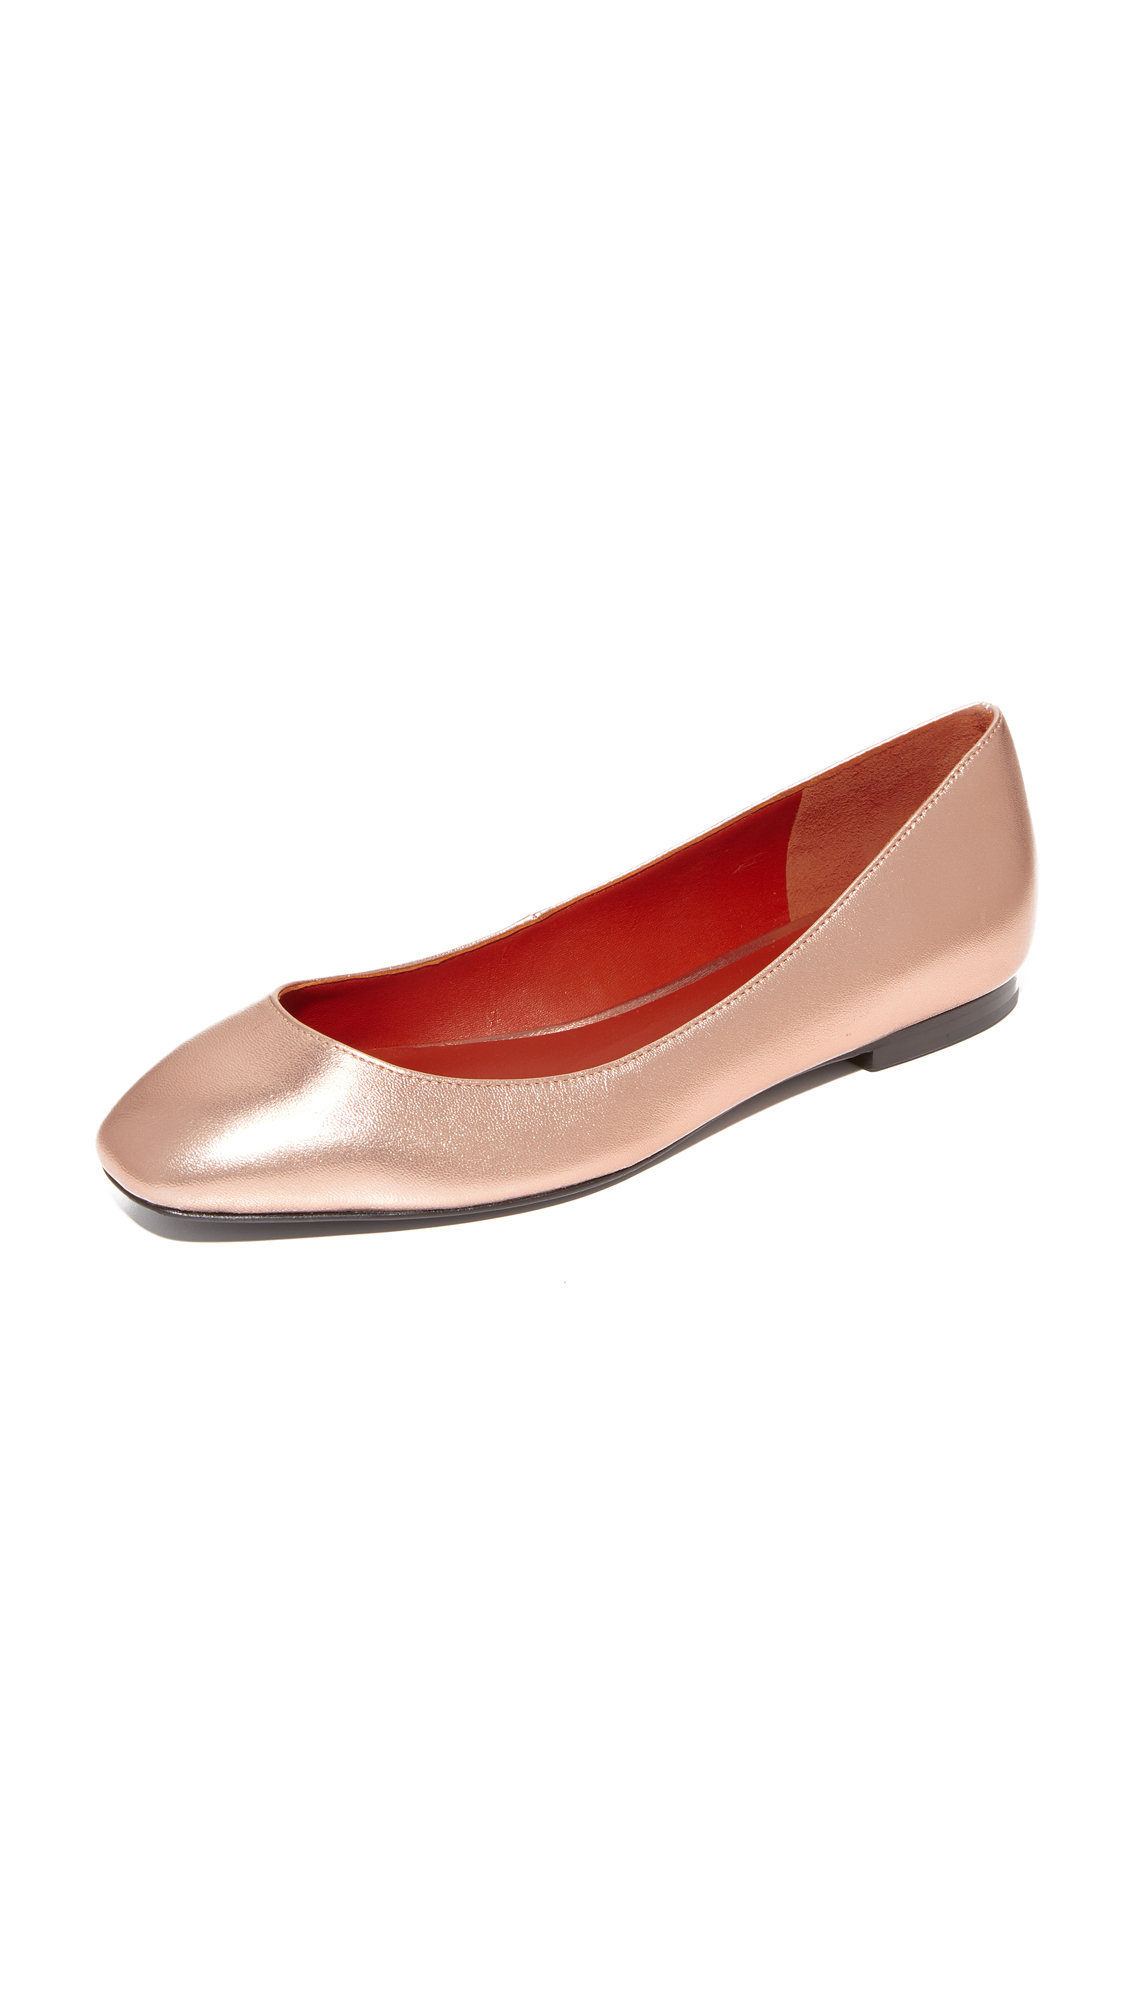 3.1 Phillip Lim Square Toe Ballet Flats - Rose Gold